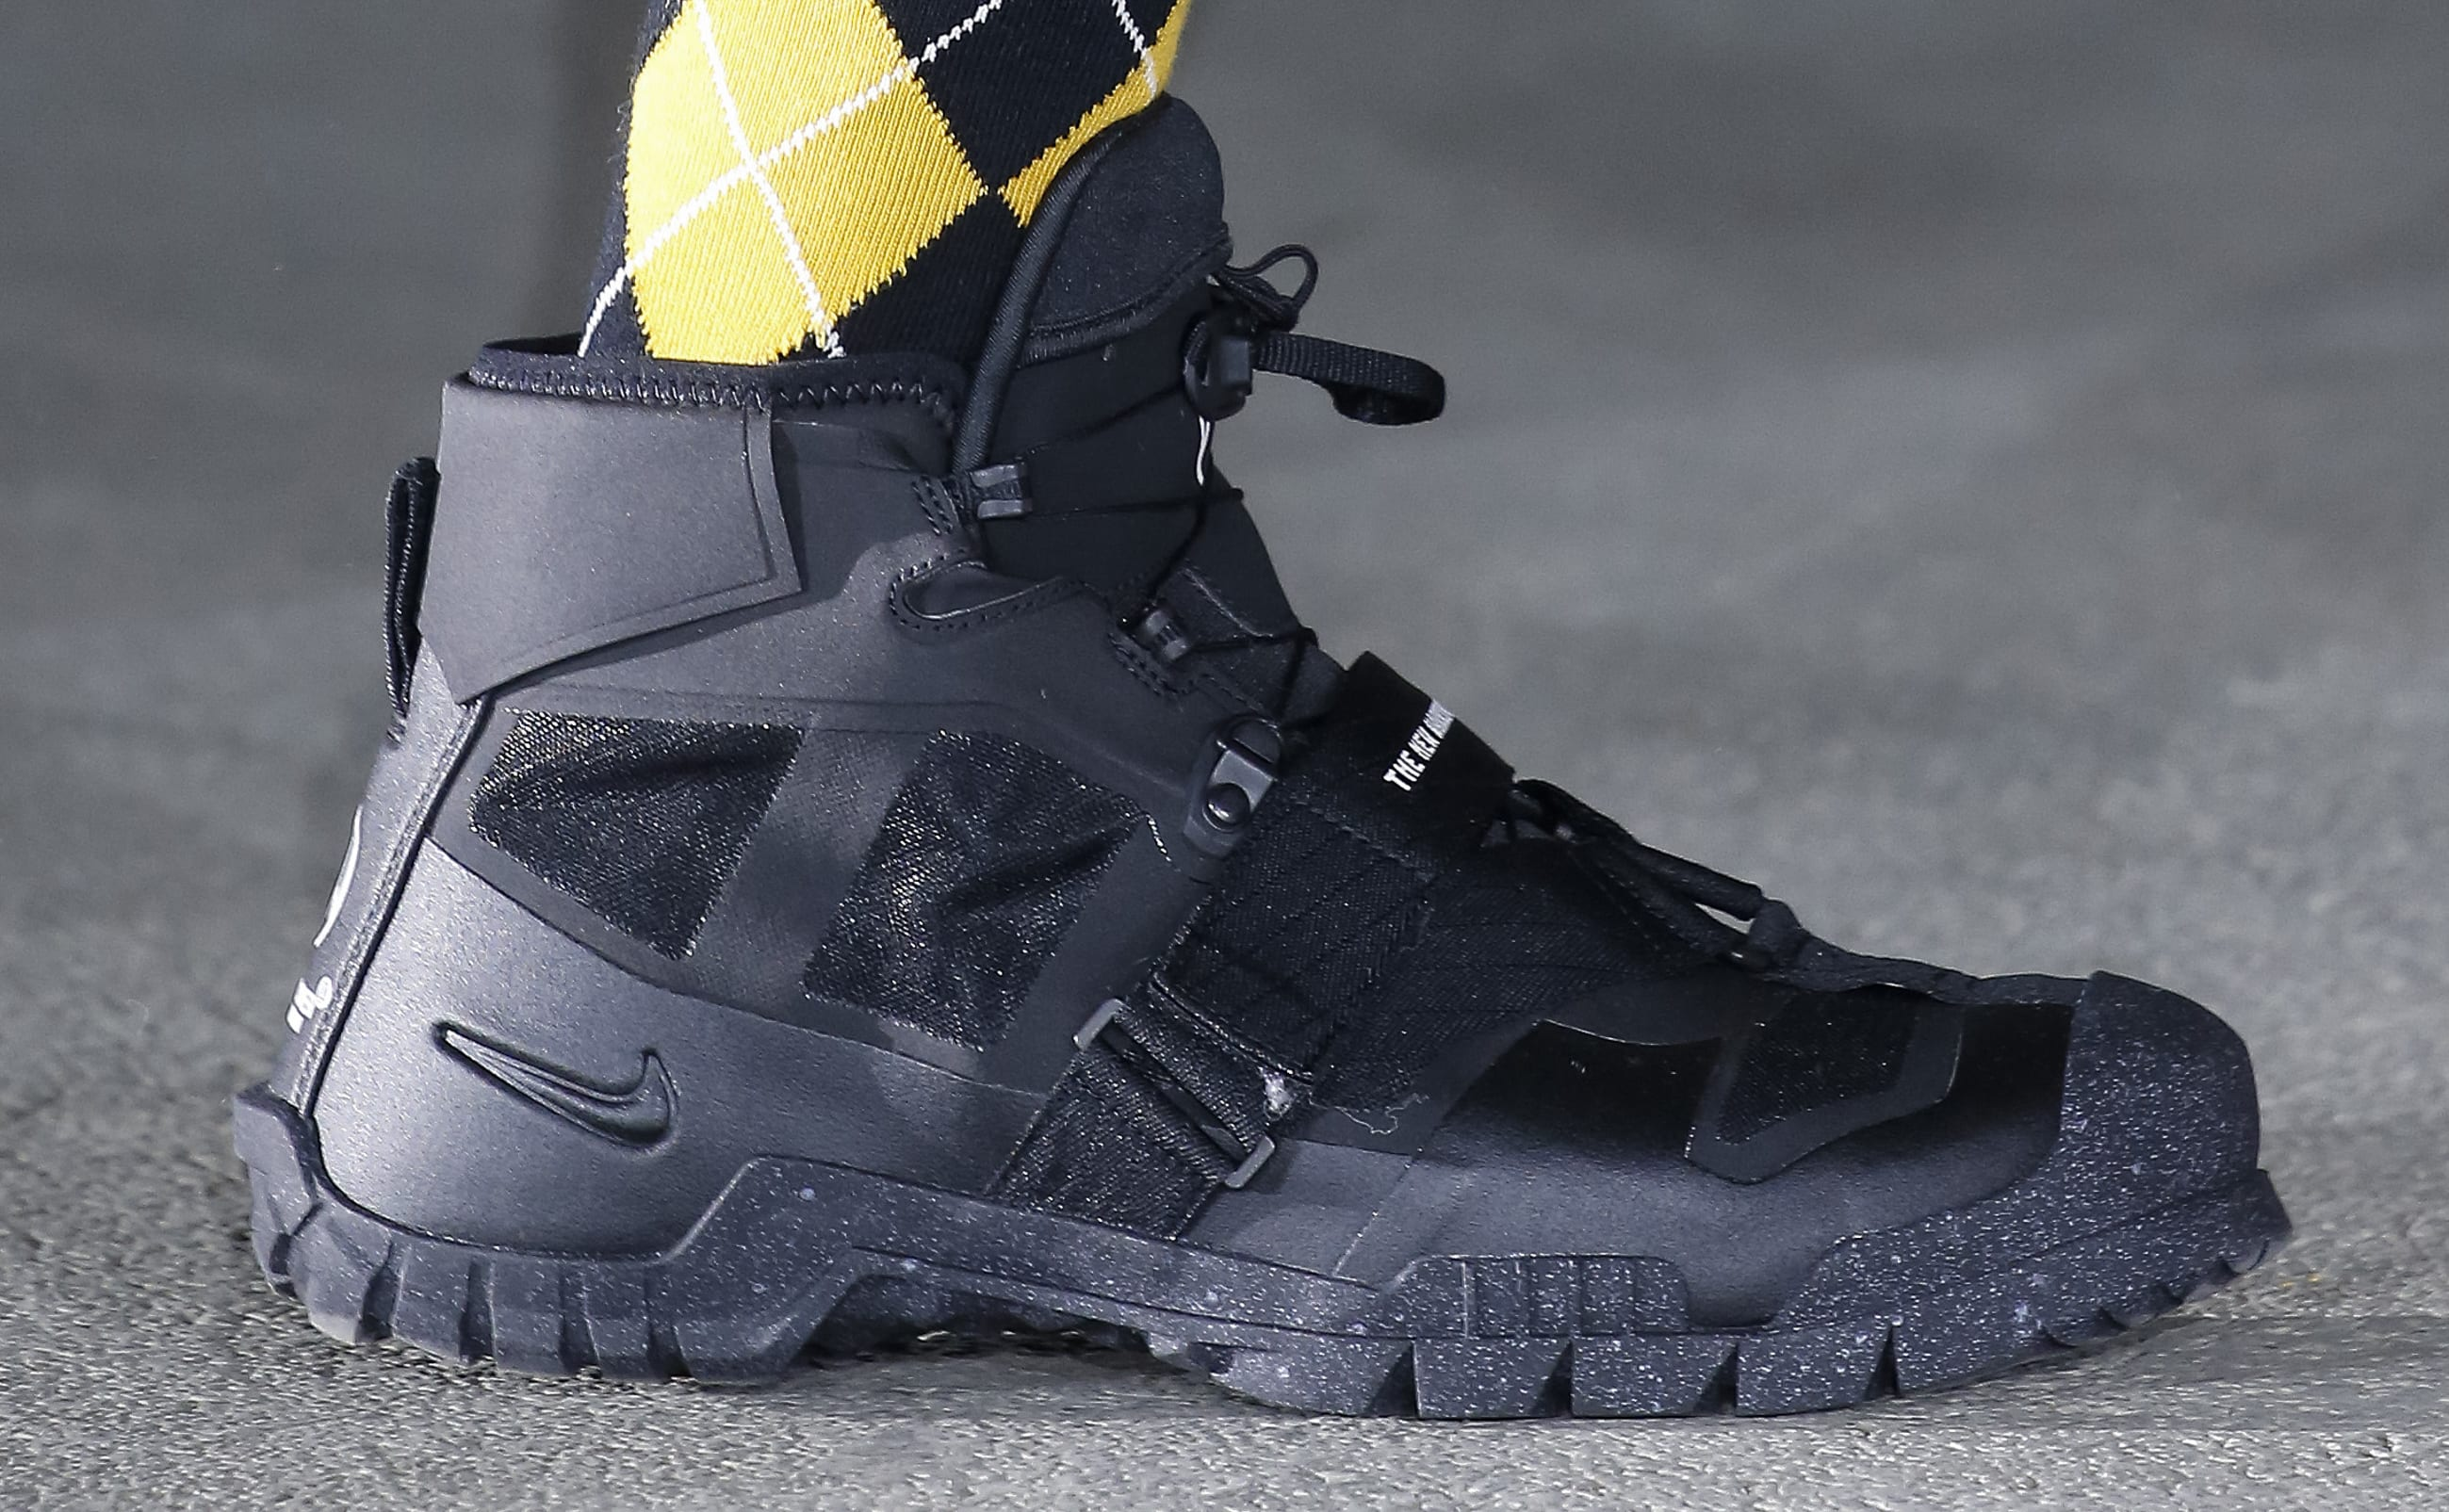 Undercover x Nike Paris Fashion Week Black High-Top (Lateral)